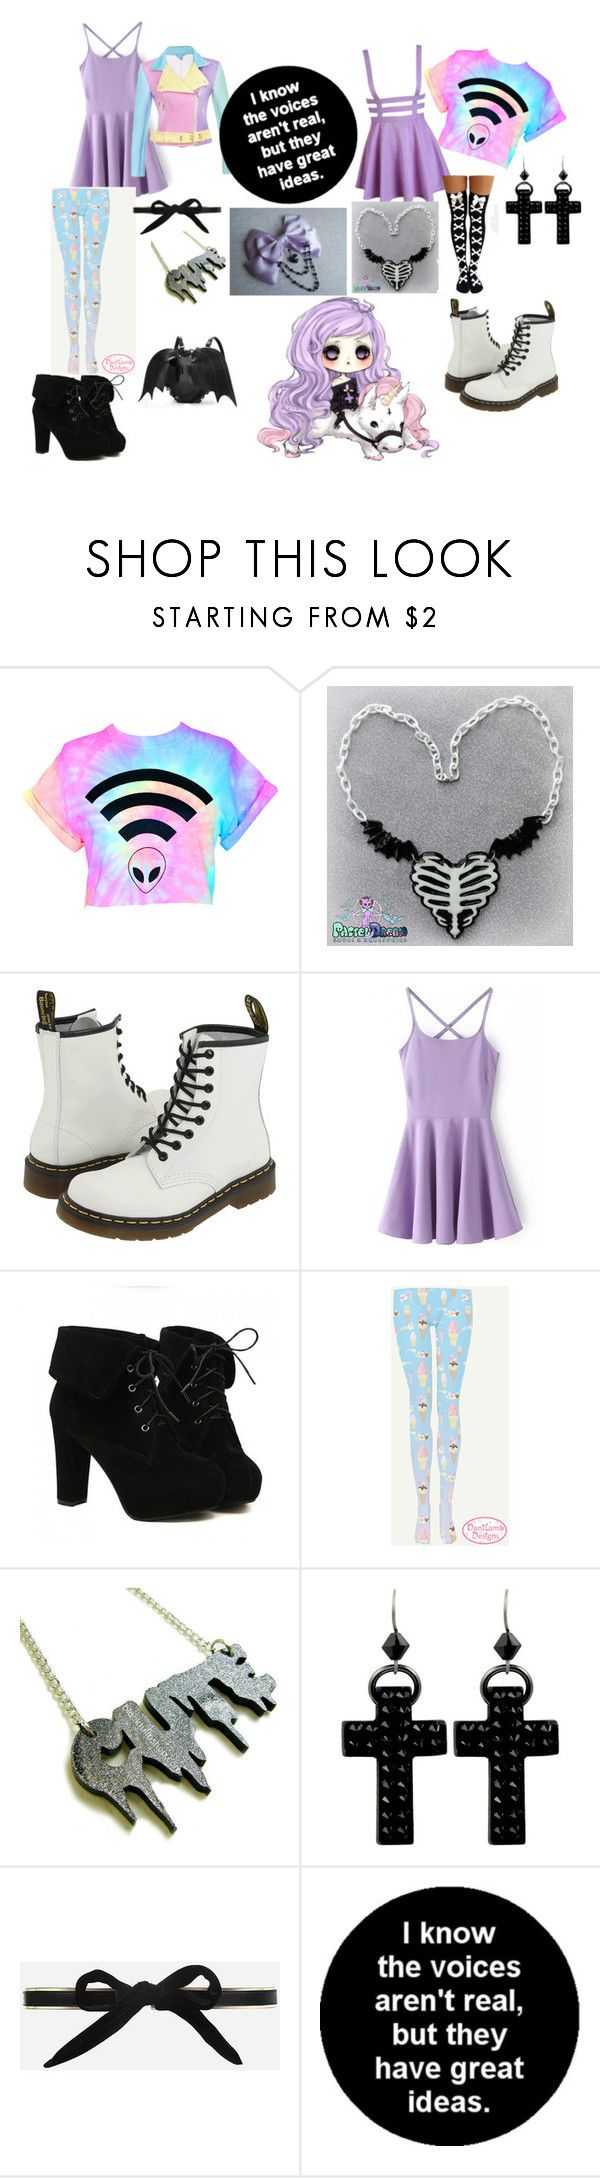 """""""Cute Pastel Goth OUTFITS! XD"""" by cutiepieadorbz ❤ liked on Polyvore featuring Mode, Dr. Martens, TURNOVER, Tarina Tarantino und CHARLES & KEITH"""